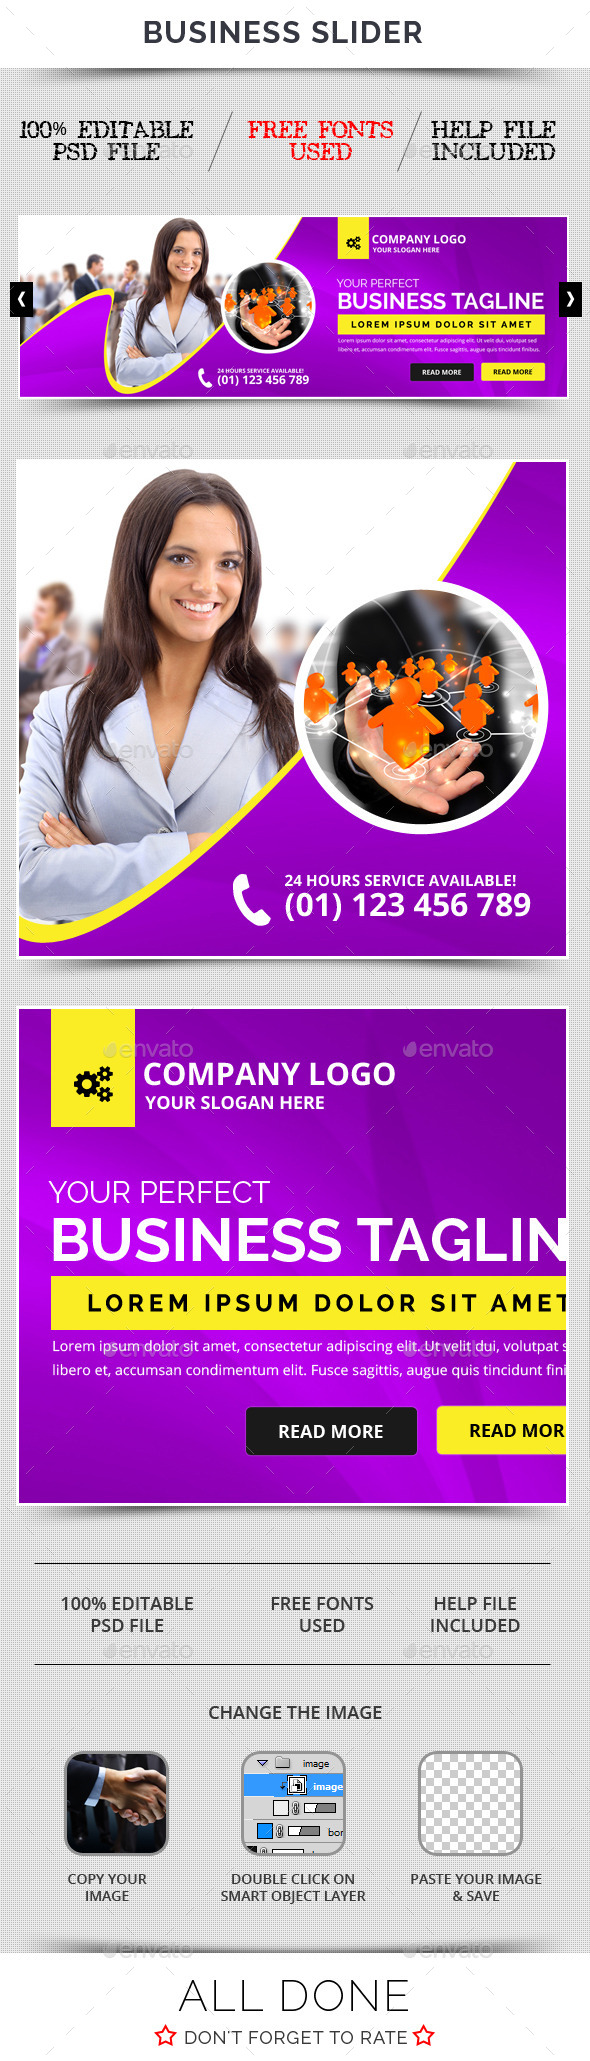 Business Slider V36